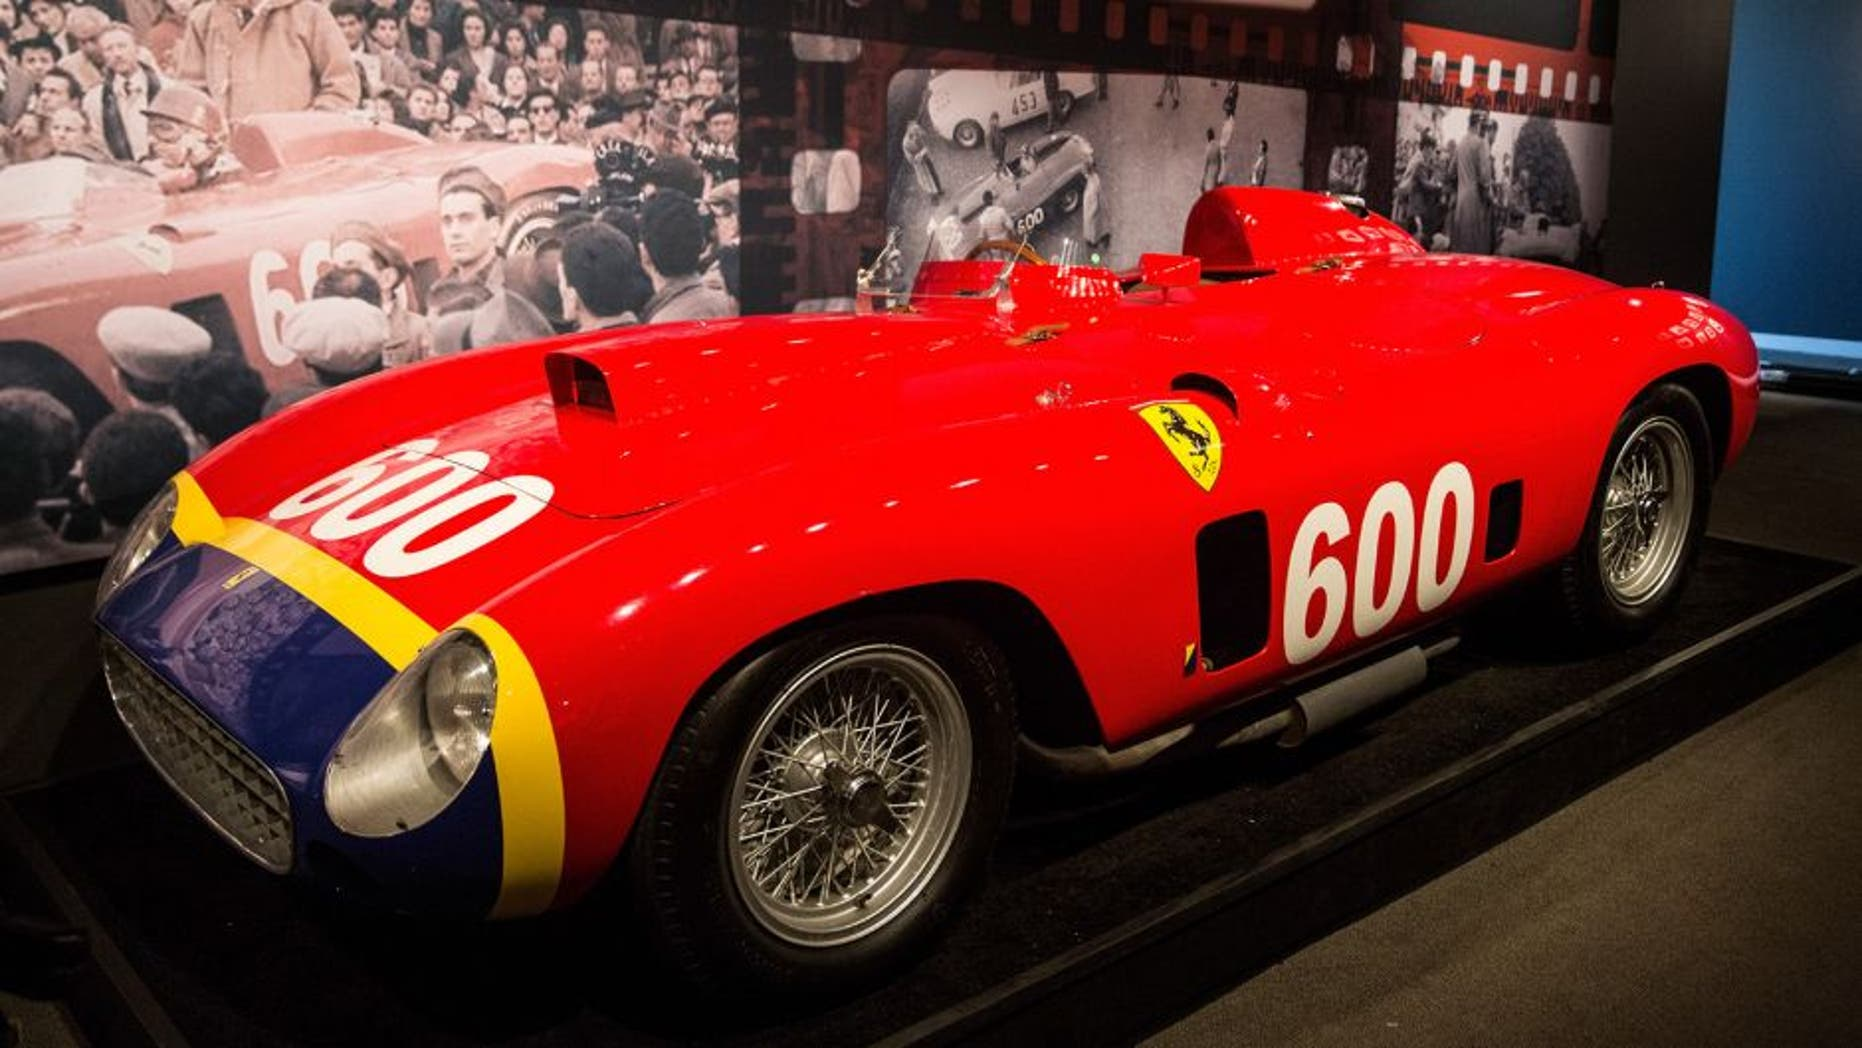 """NEW YORK, NY - DECEMBER 04: A 1956 Ferrari 290 MM by Scaglietti sits on display at Sotheby's during a press preview before the """"Driven by Disruption"""" auction on December 4, 2015 in New York City. The auction will include more than 30 vehicles spanning 70 years in automotive innovation. (Photo by Andrew Burton/Getty Images)"""